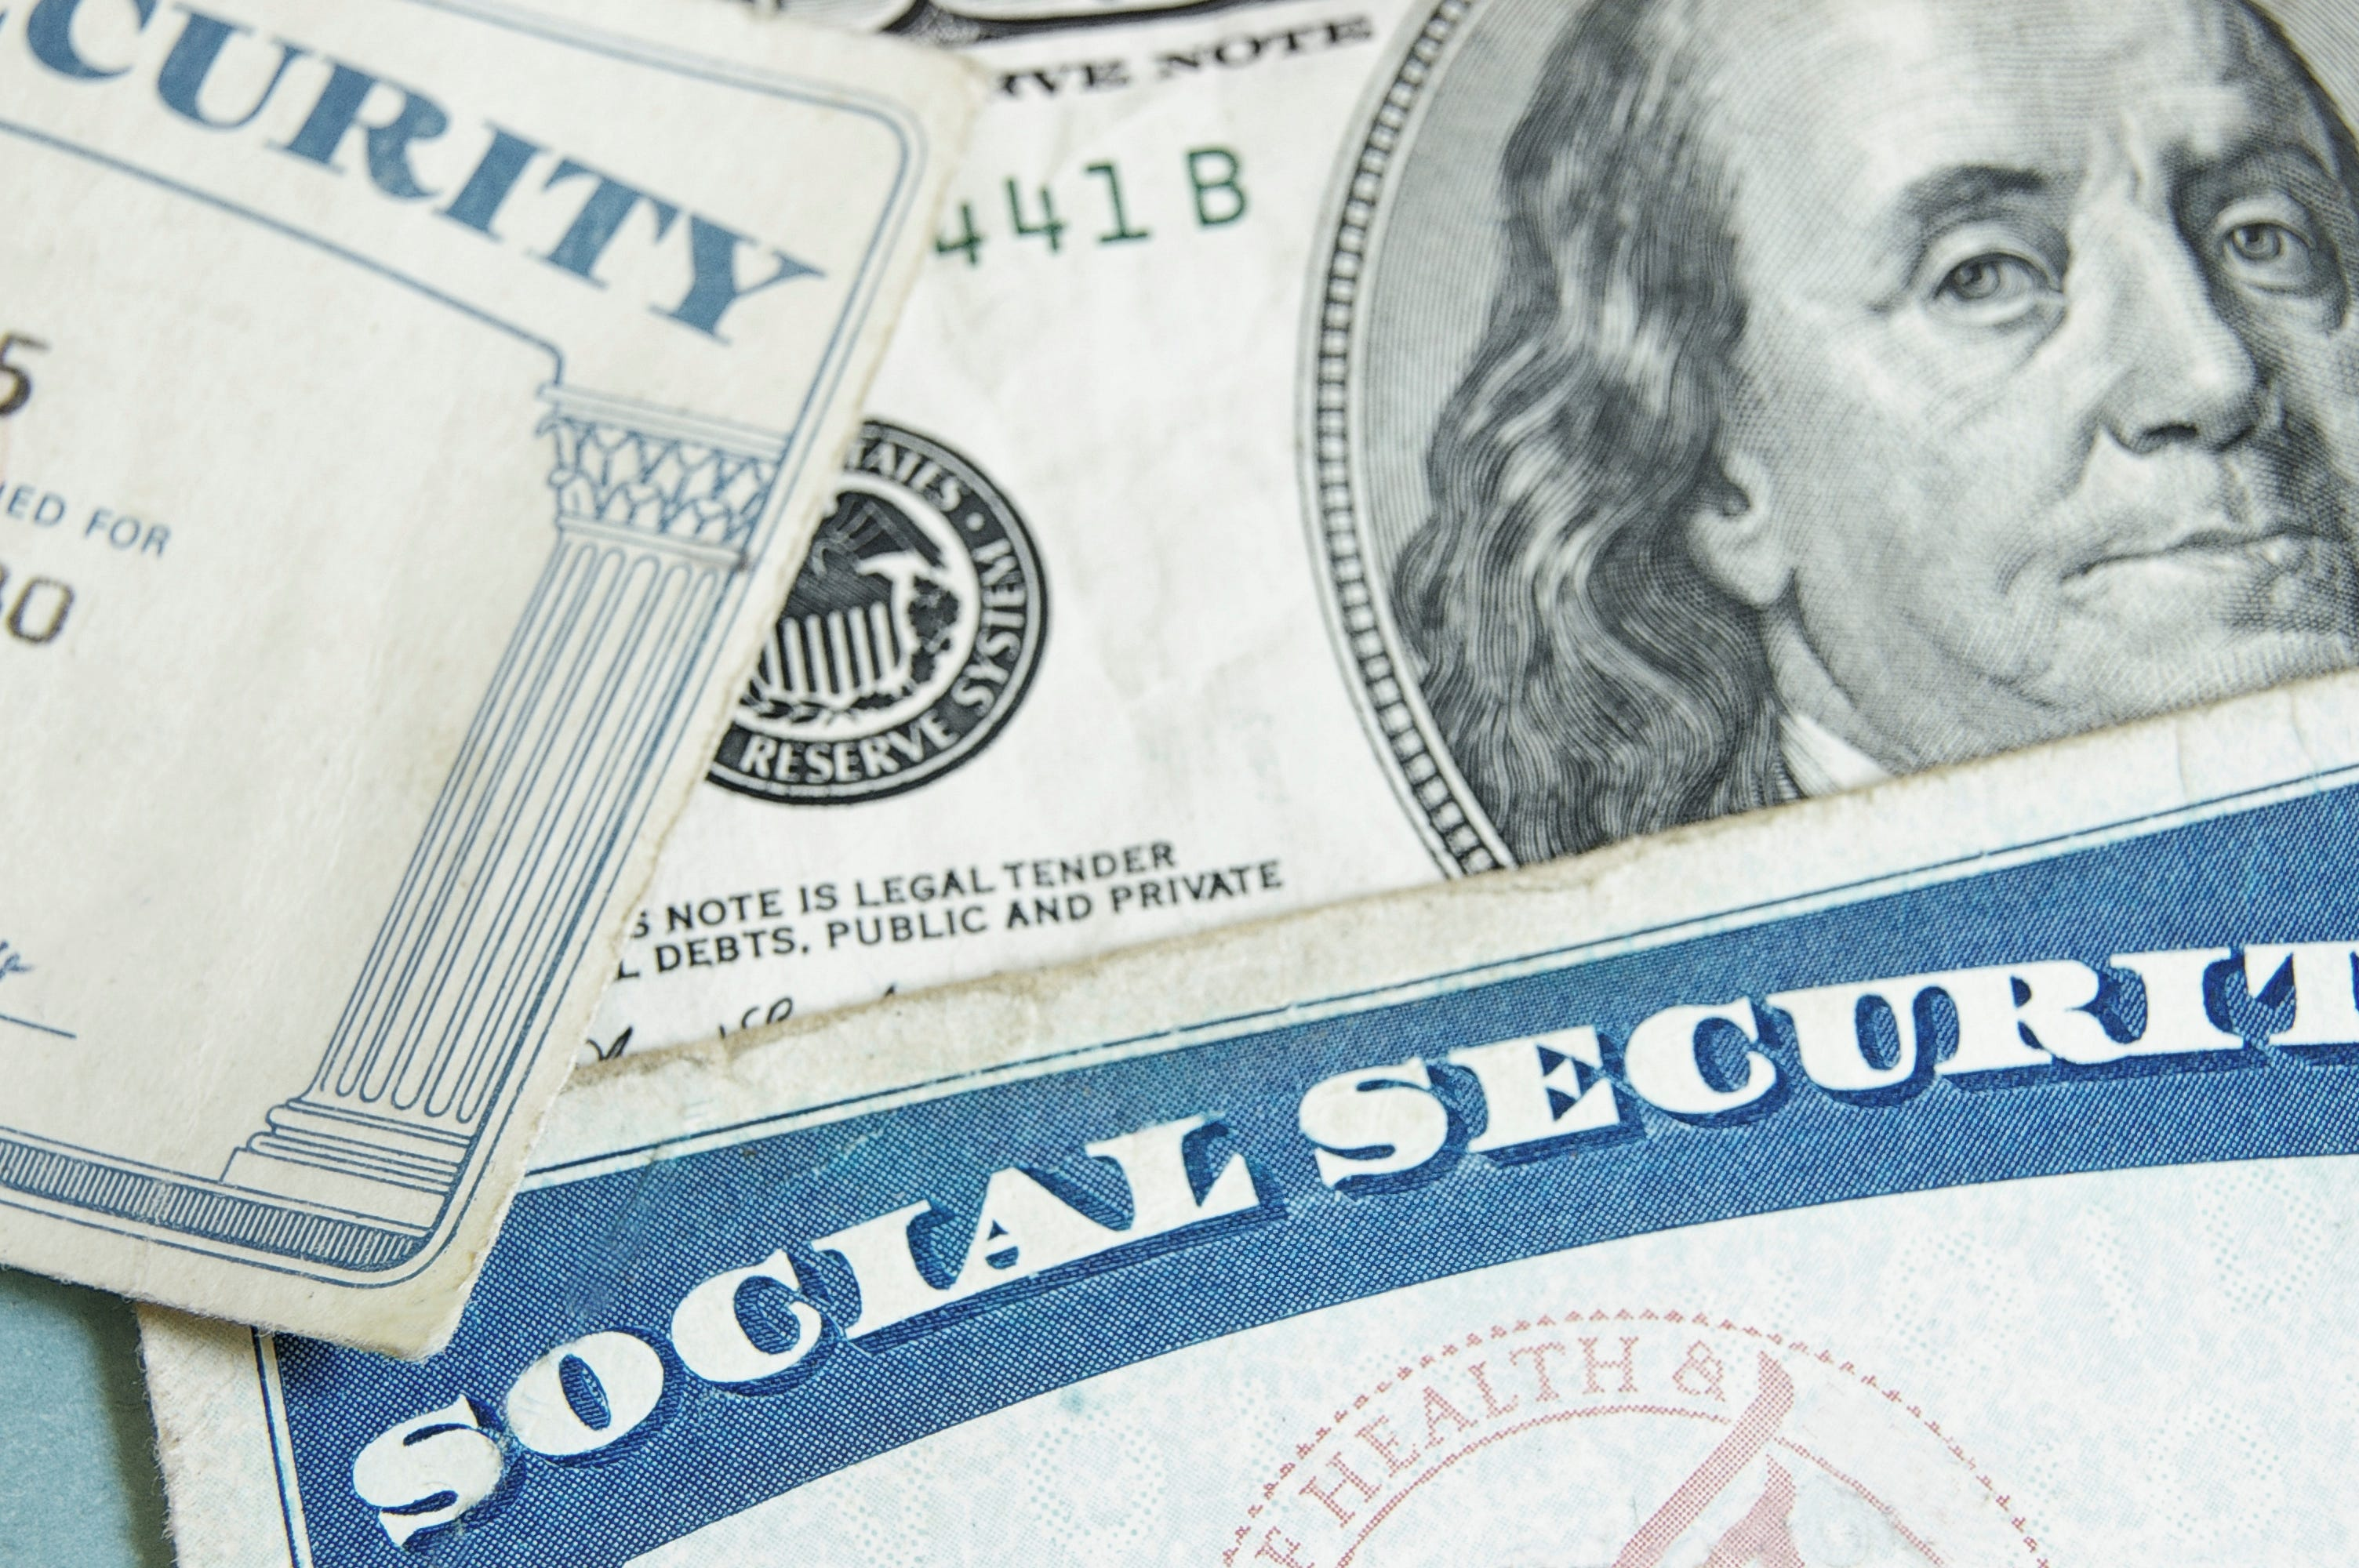 Social Security survival strategies with COLA only at 0.2%